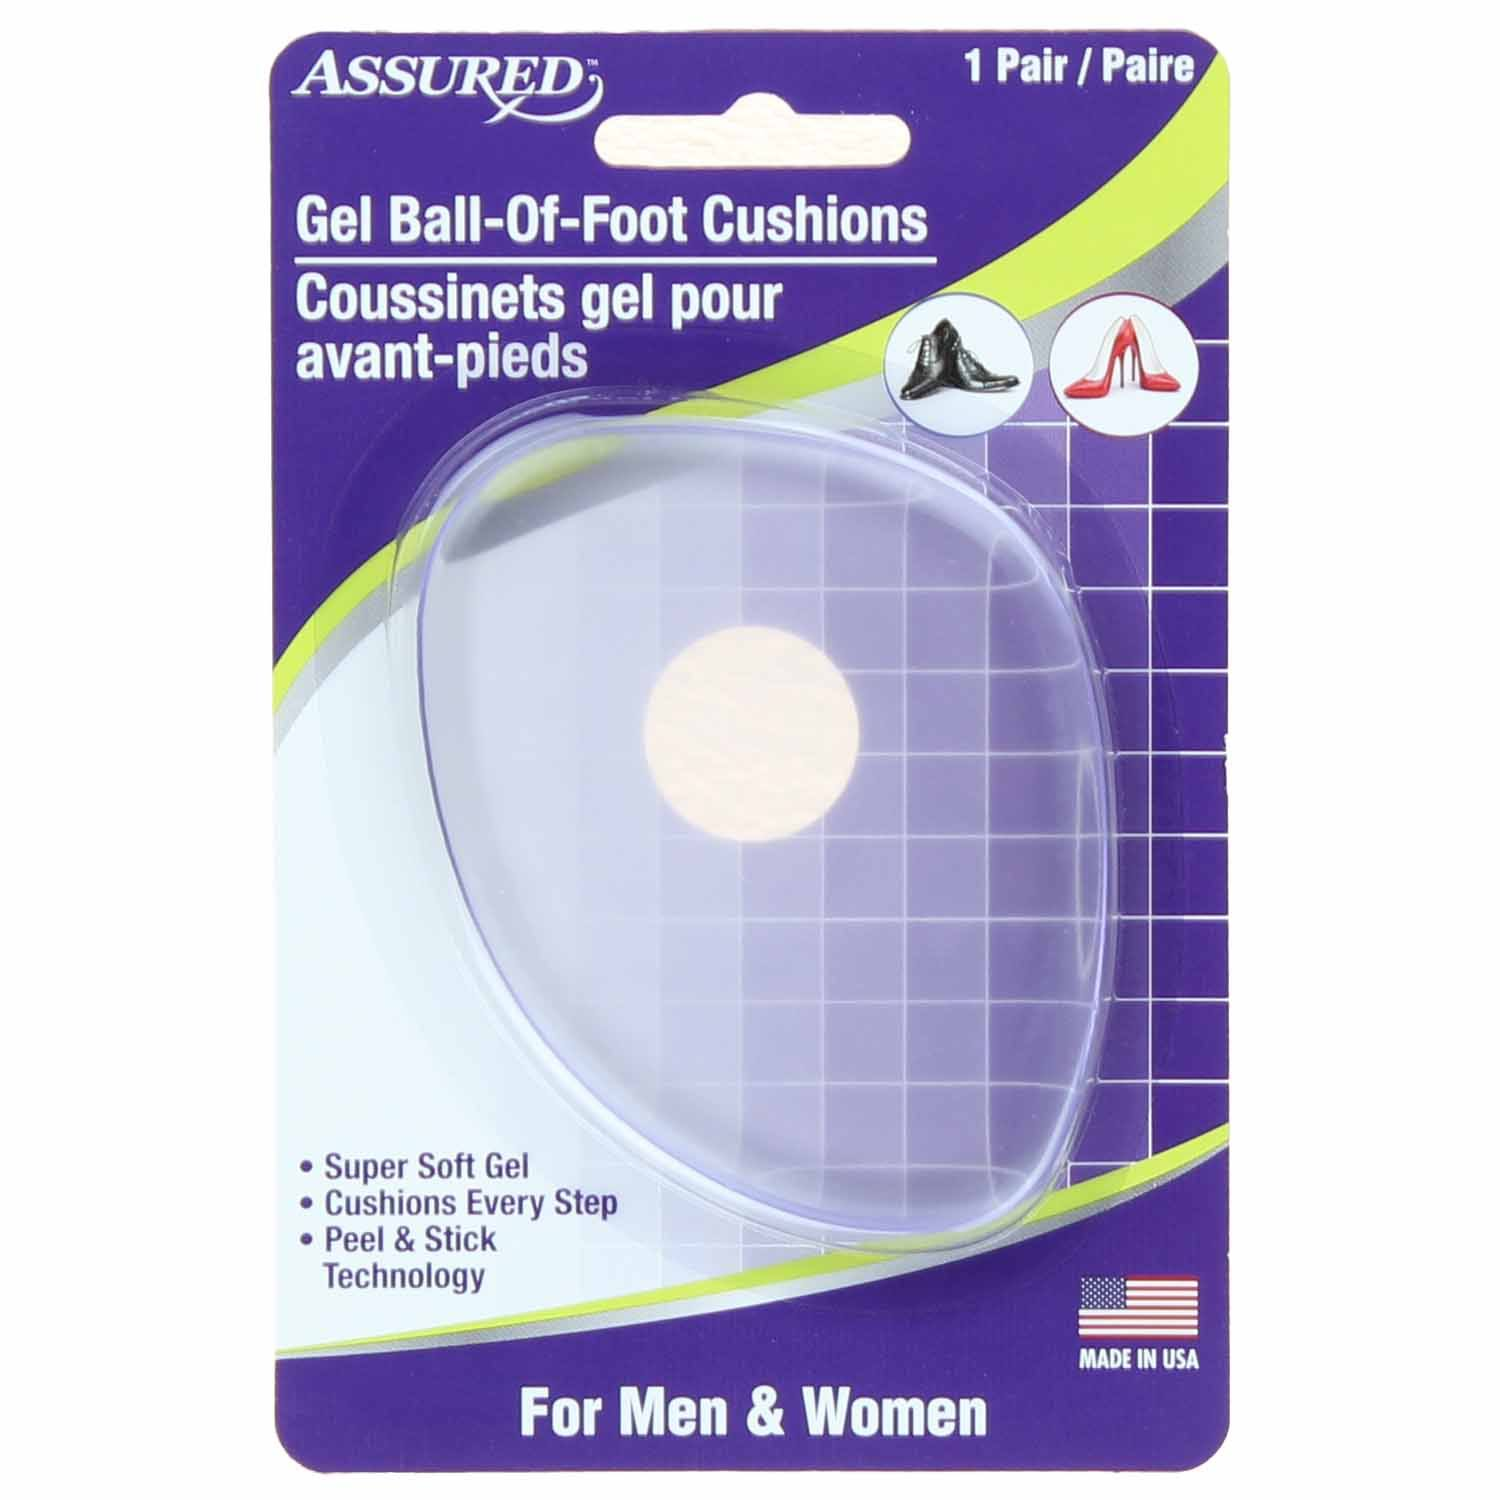 Assured Gel Ball of Foot Cushions for Men & Women 1 Pair Packs